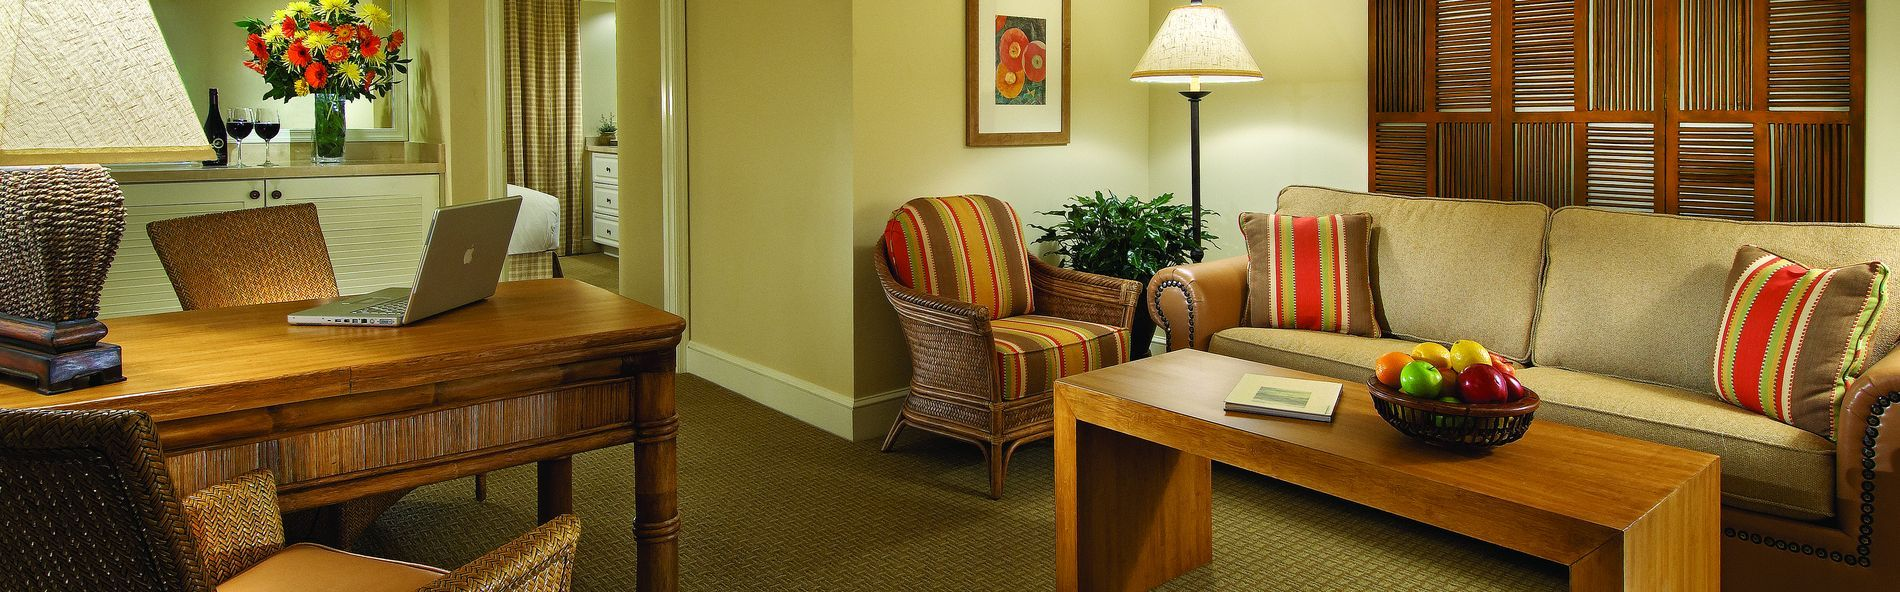 sofa beds phoenix arizona small hide a bed resort suites in   grand & spa